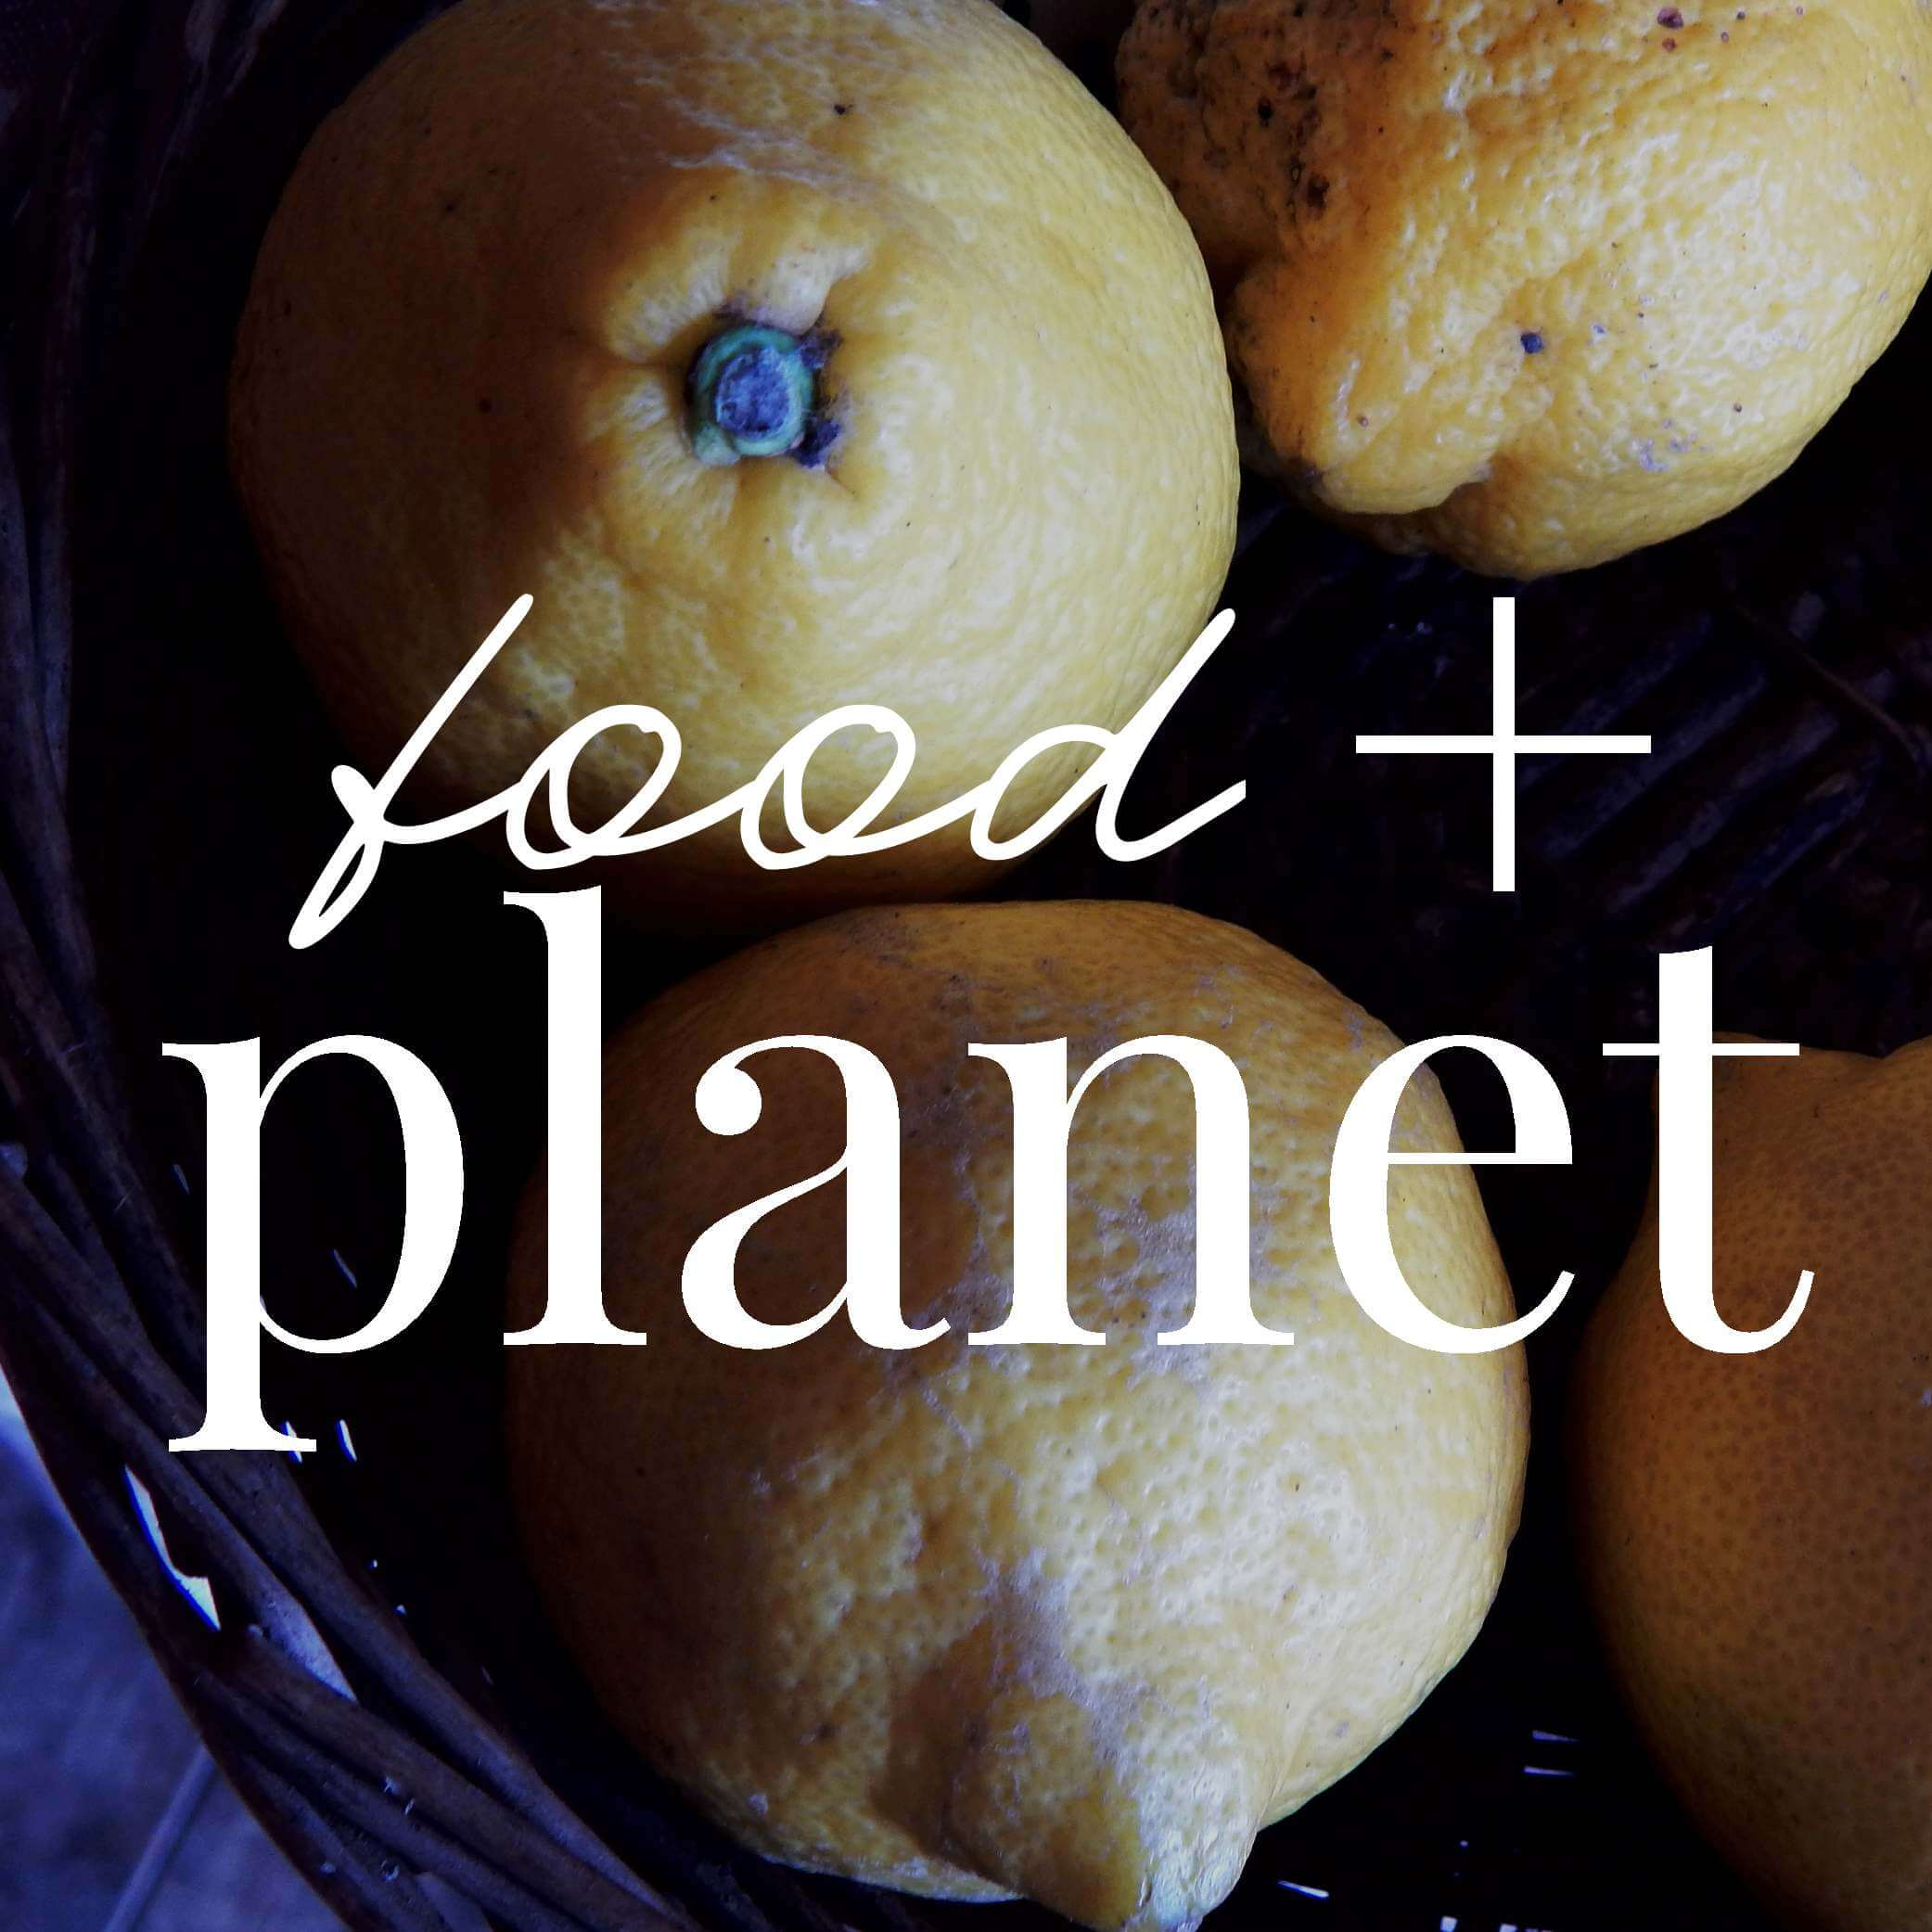 Lemons in a basket with text overlaid: 'food + planet'